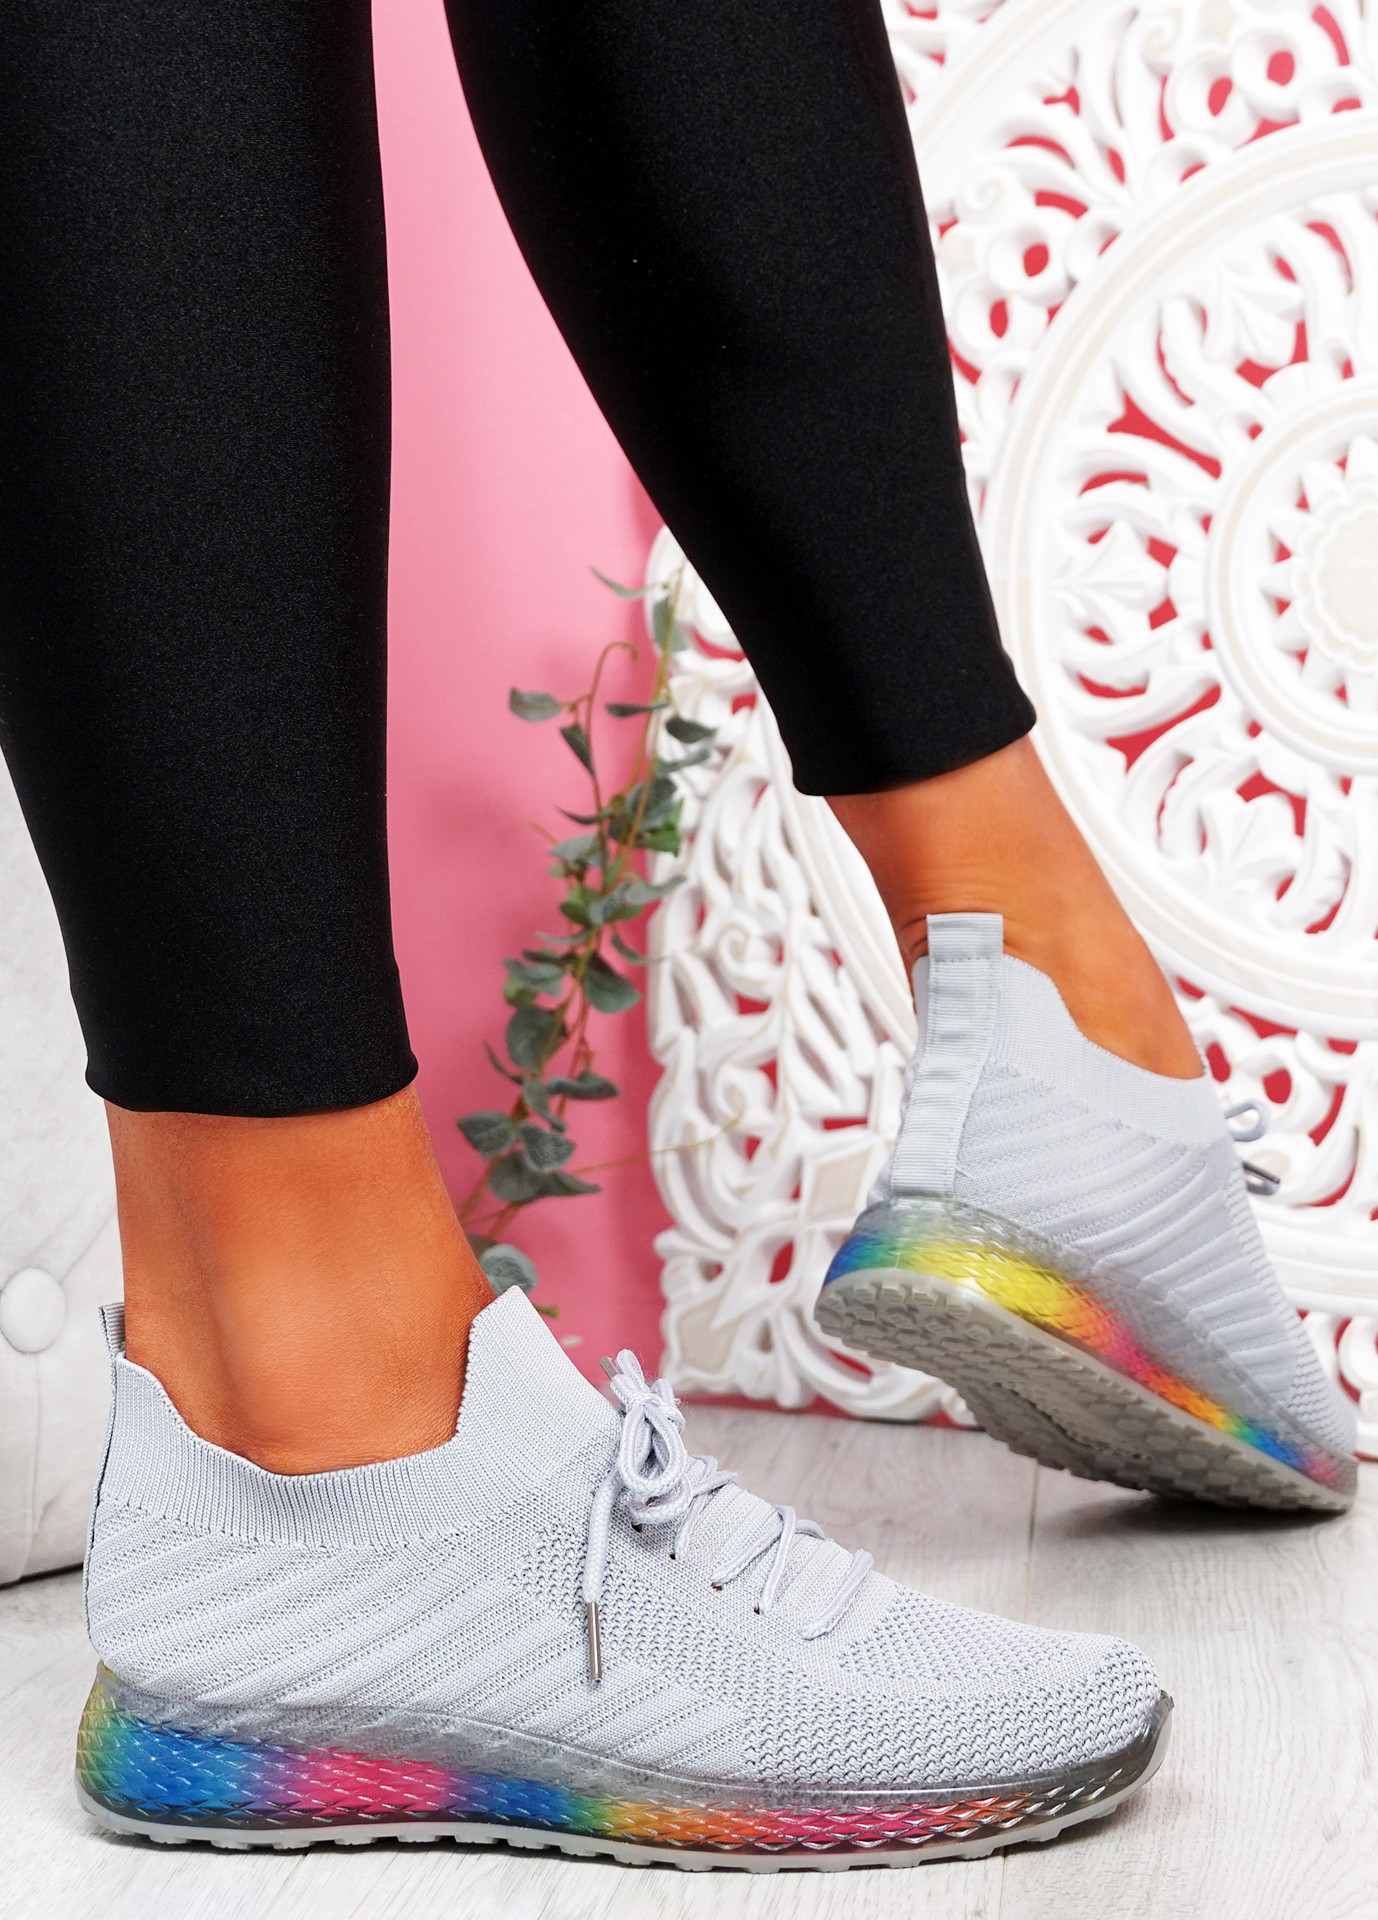 Nolly Grey Knit Rainbow Trainers